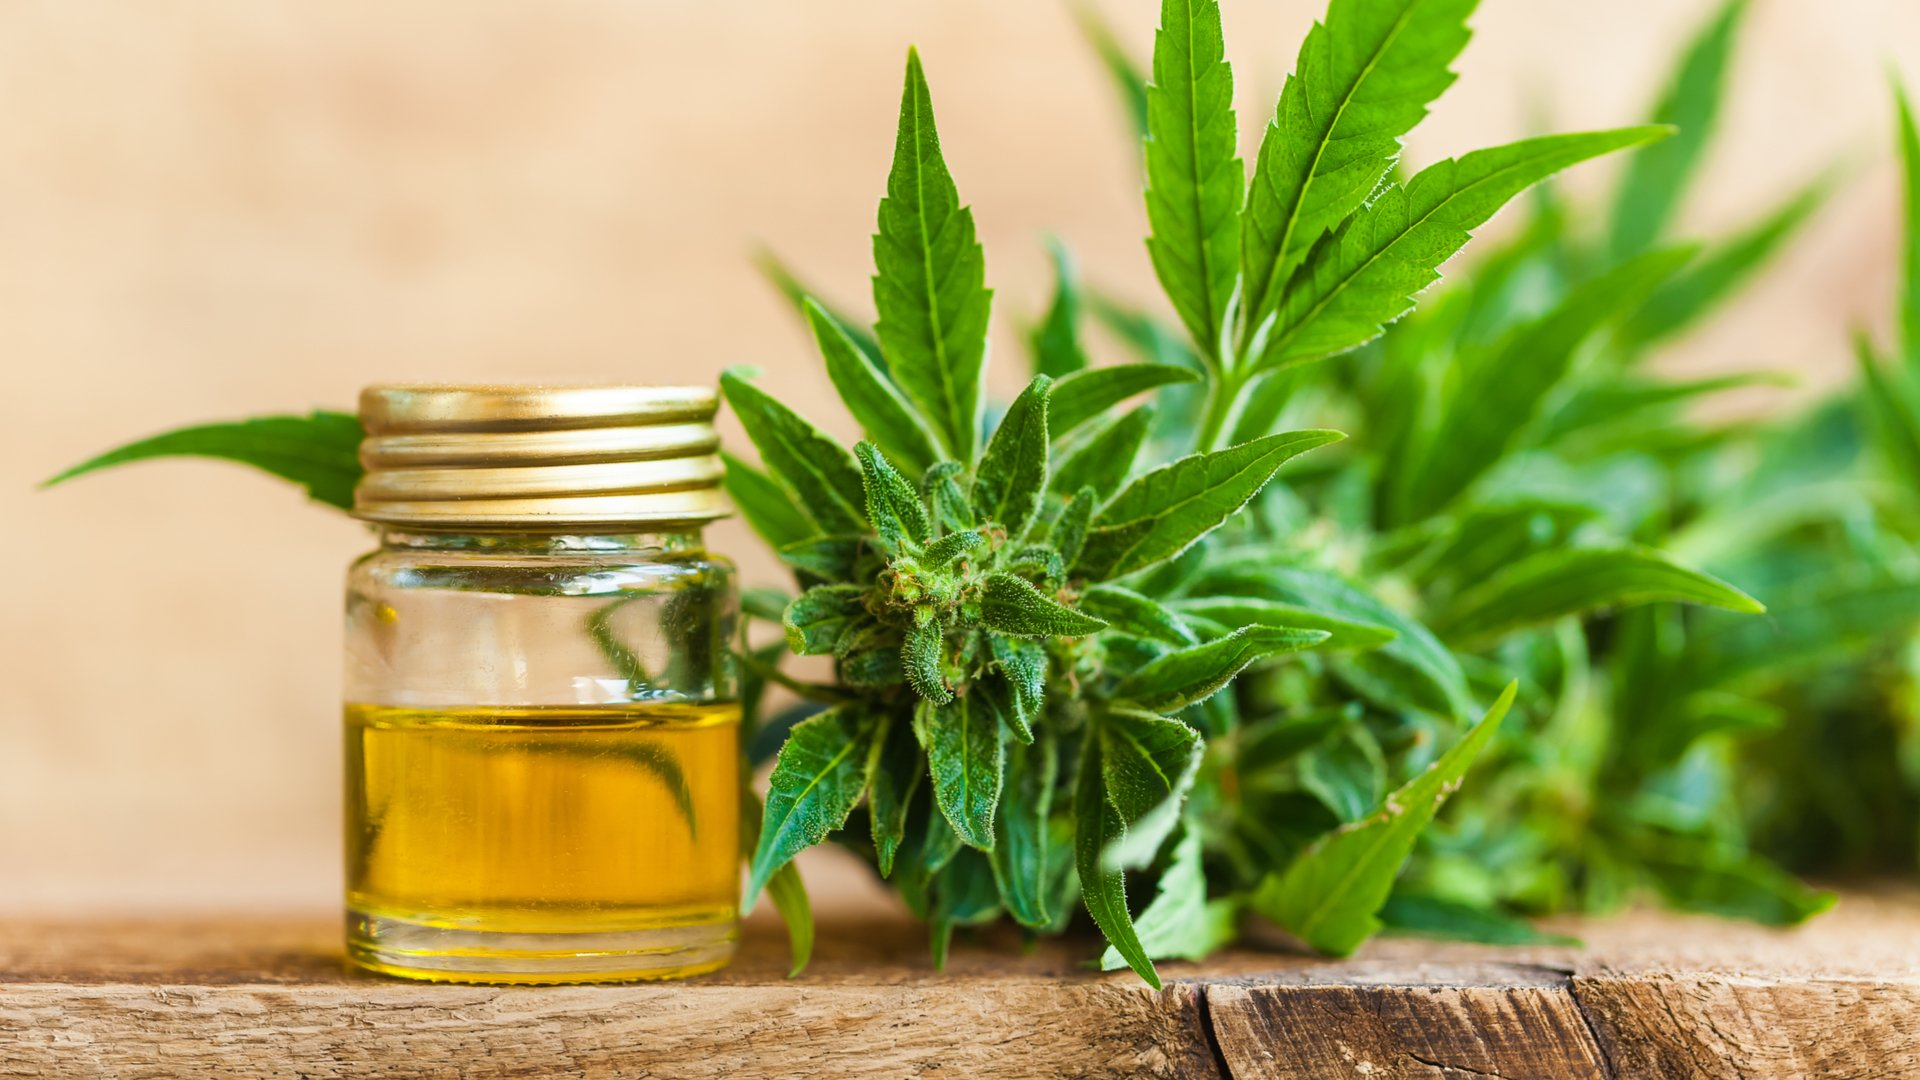 CBD skincare is quickly becoming a multibillion-dollar industry.